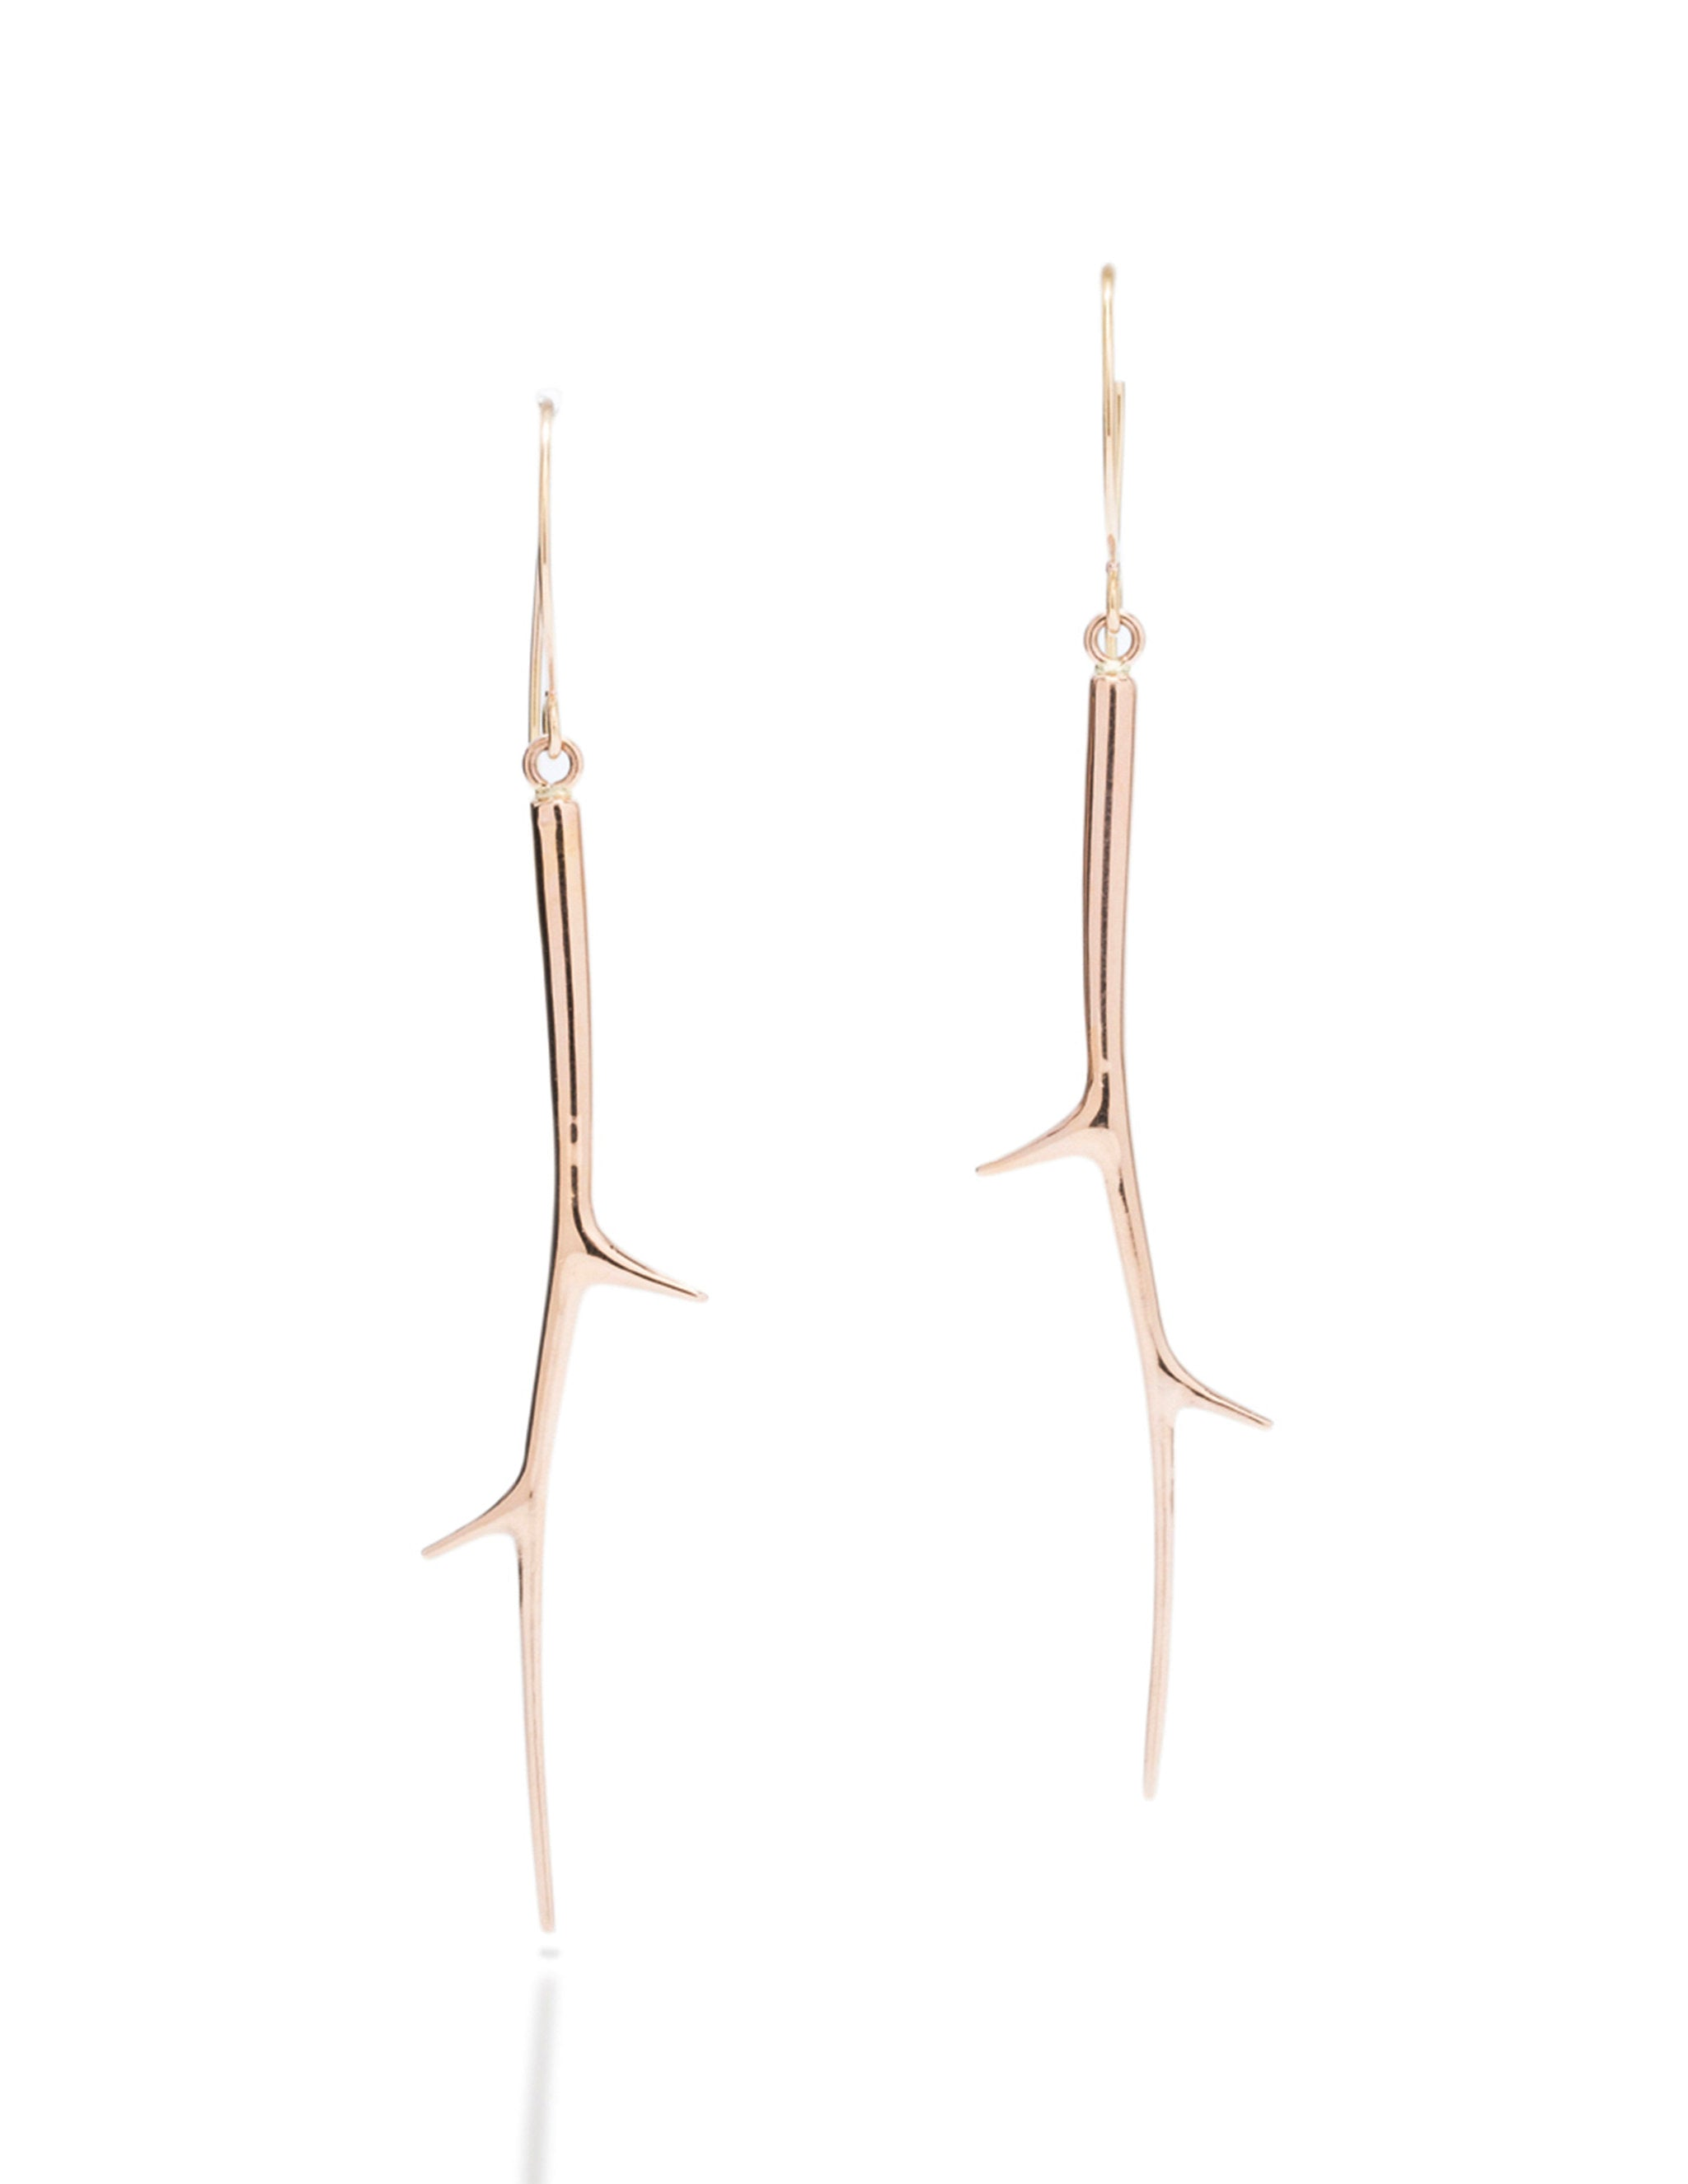 Rose Gold Polished Branch Drop Earrings - Charles Koll Jewellers